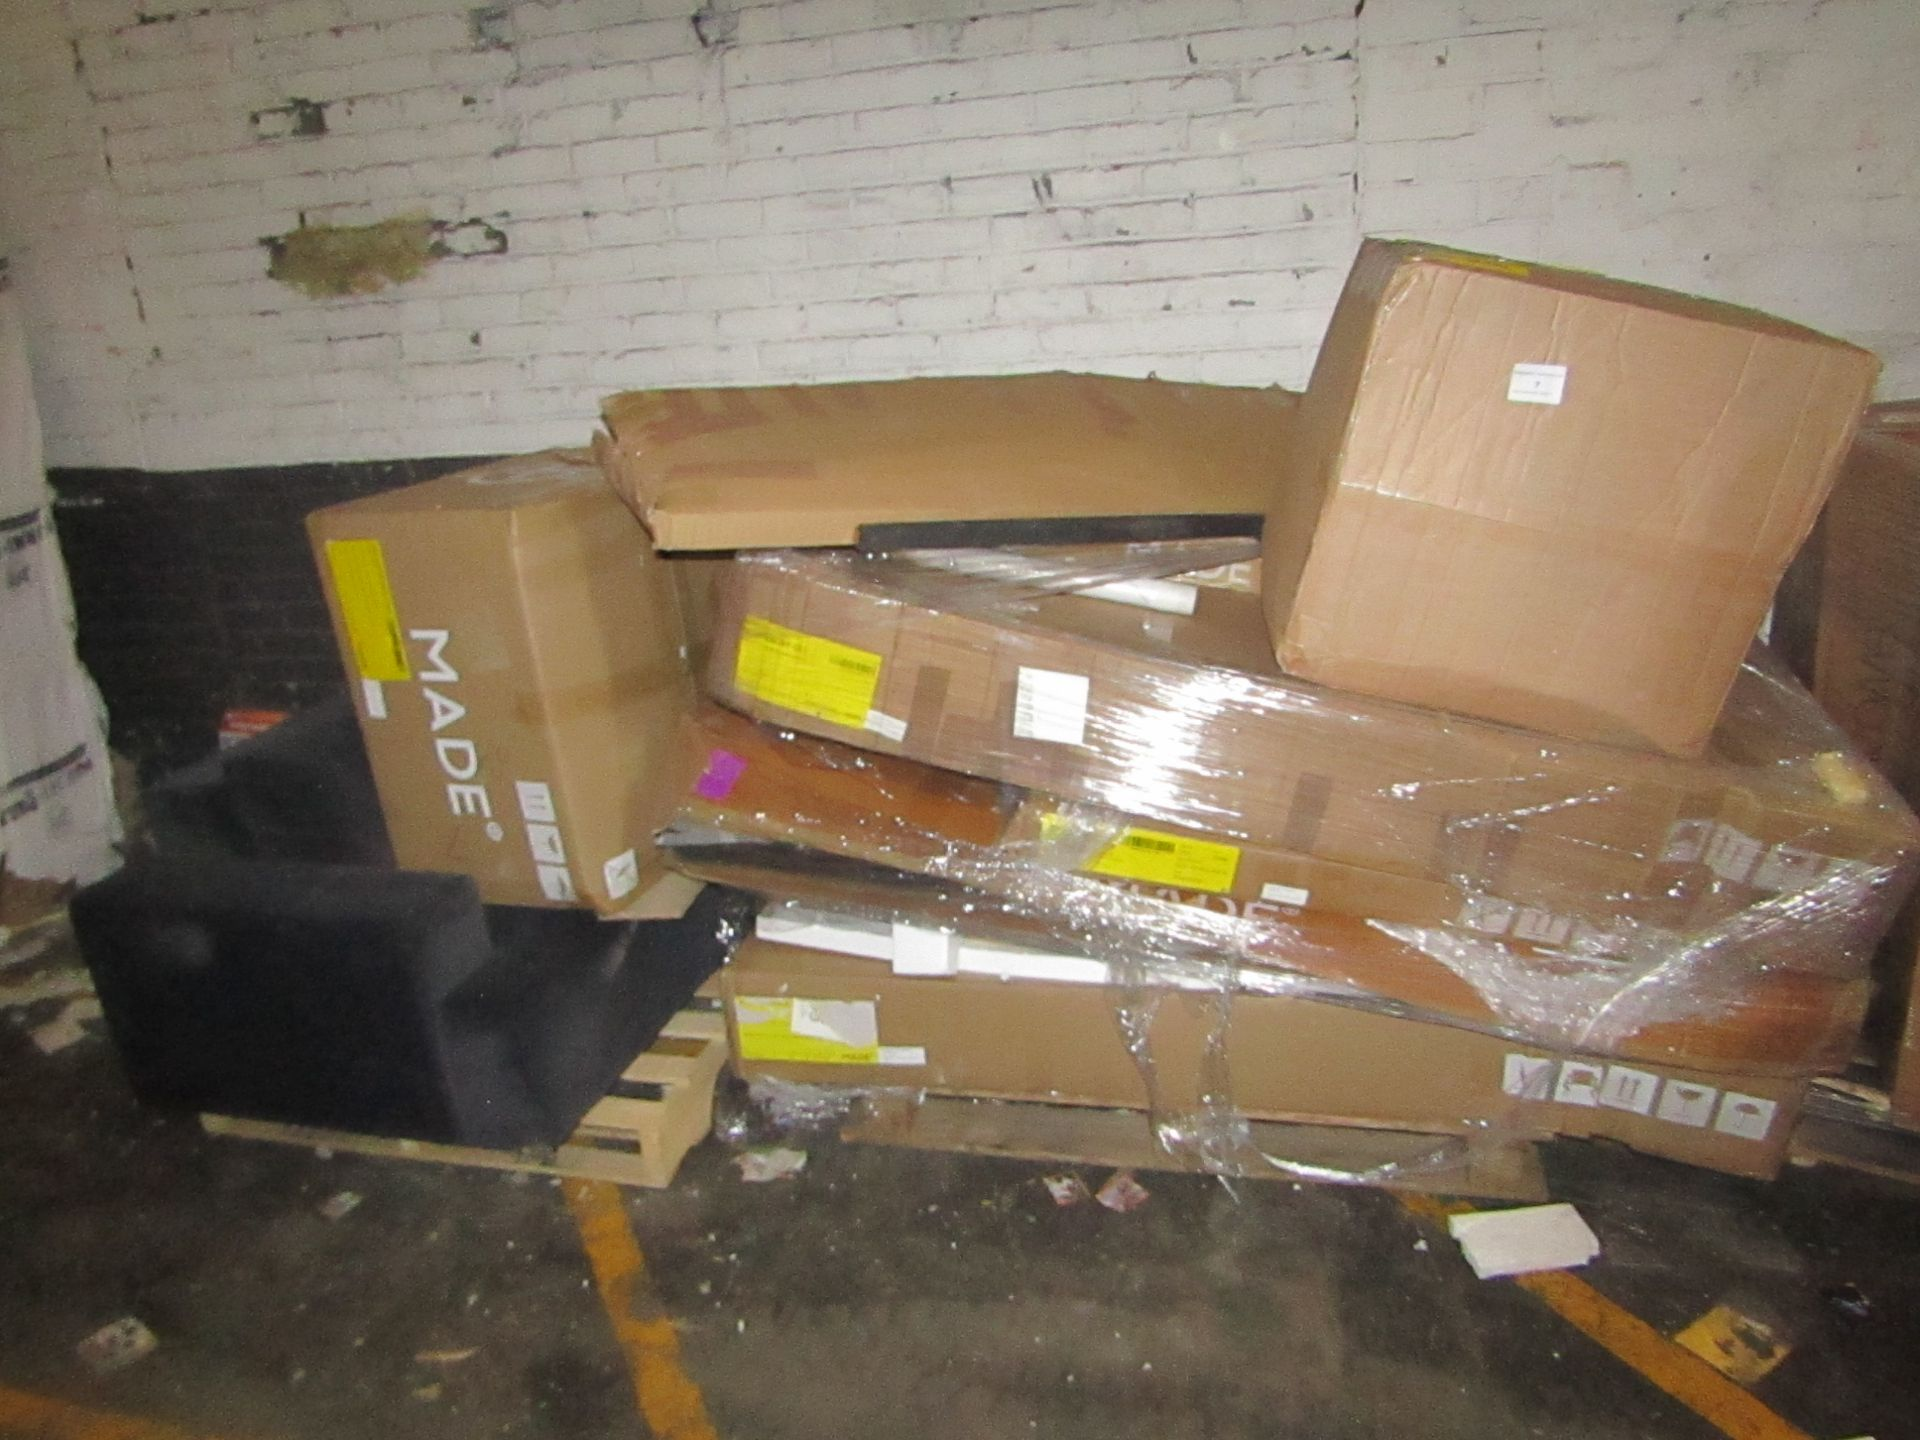 | 2X | PALLET OF MADE.COM RAW CUSTOMER RETURNS, CONDITION CAN RANGE BETWEEN NEW, UNWANTED, BROKEN OR